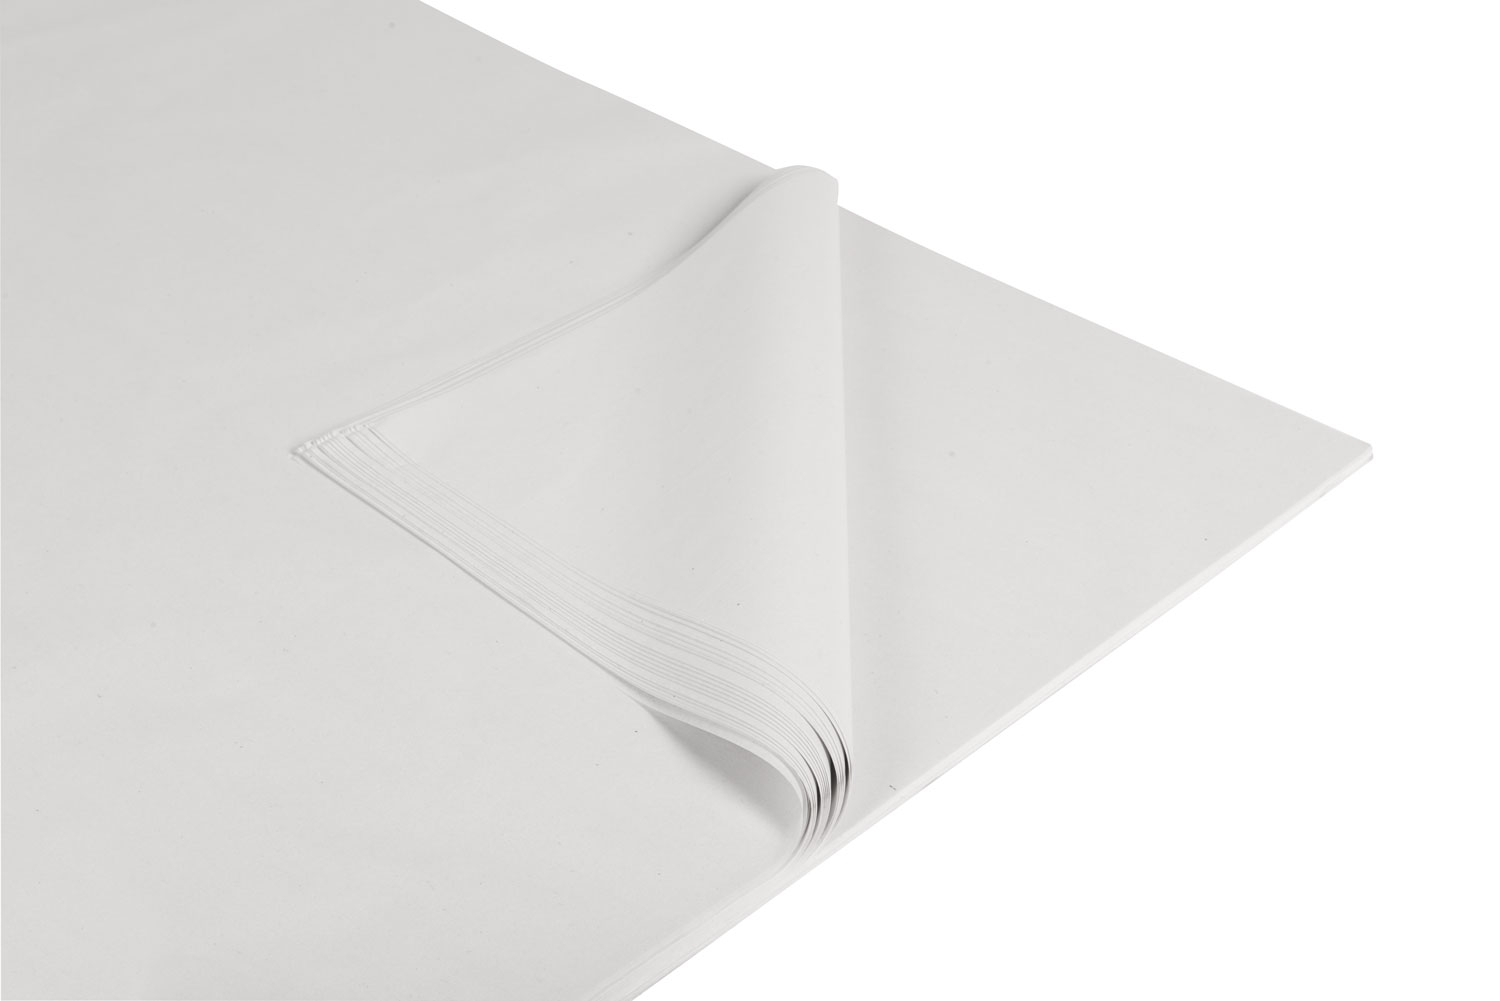 15inch X 20inch White New Offcuts - 10kg packs